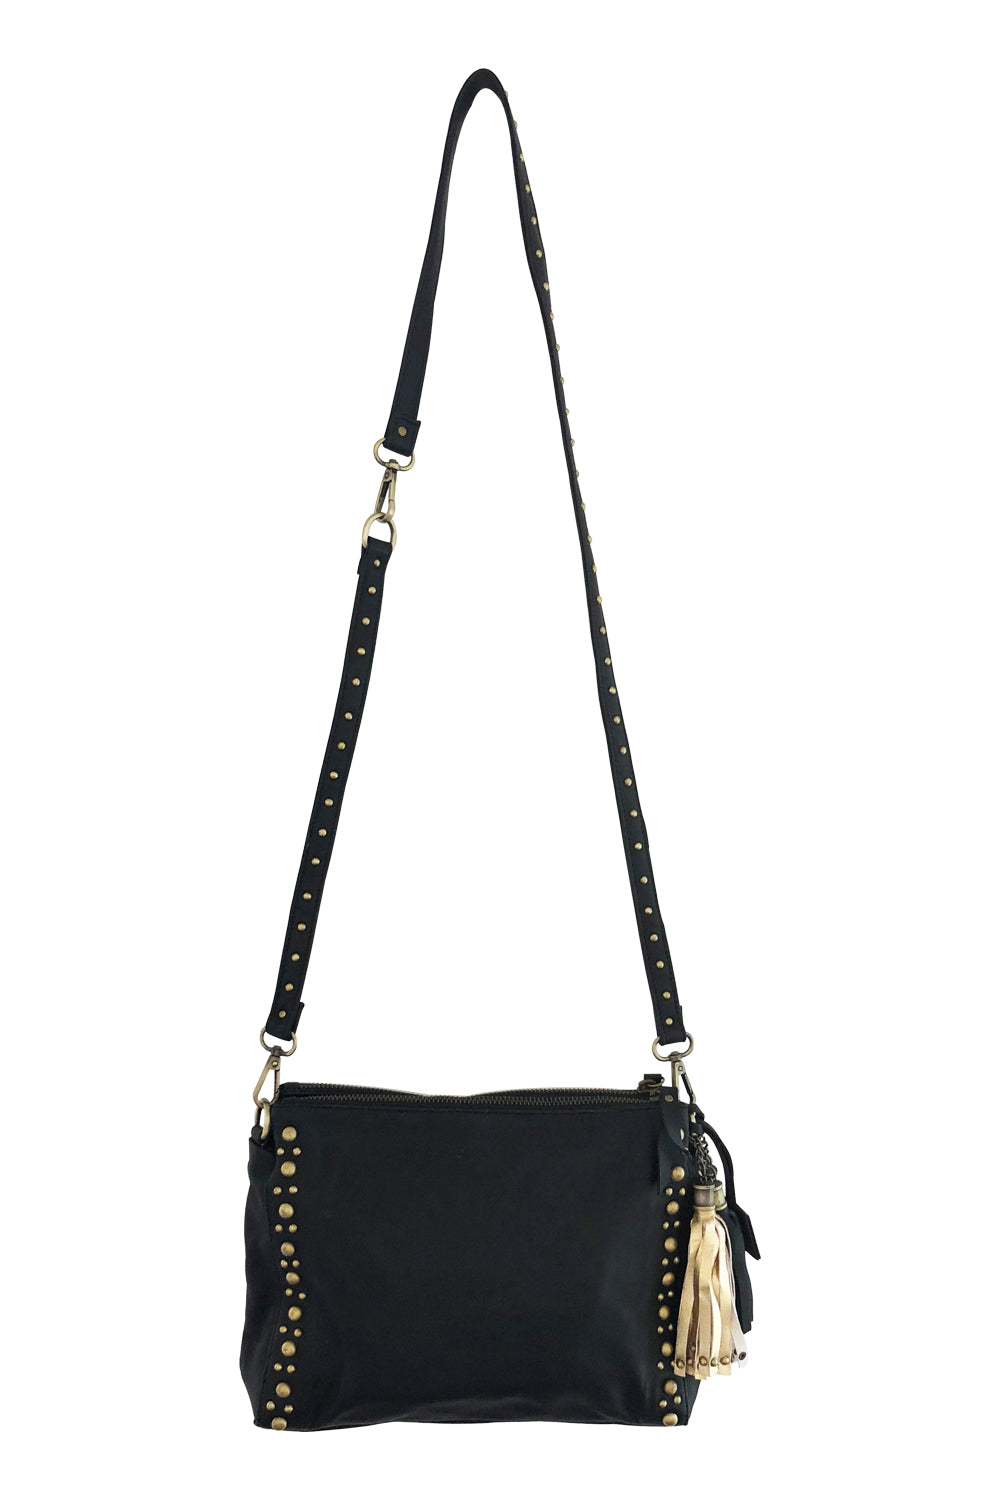 Essential Crossbody Traveler - Zahir Lifestyle